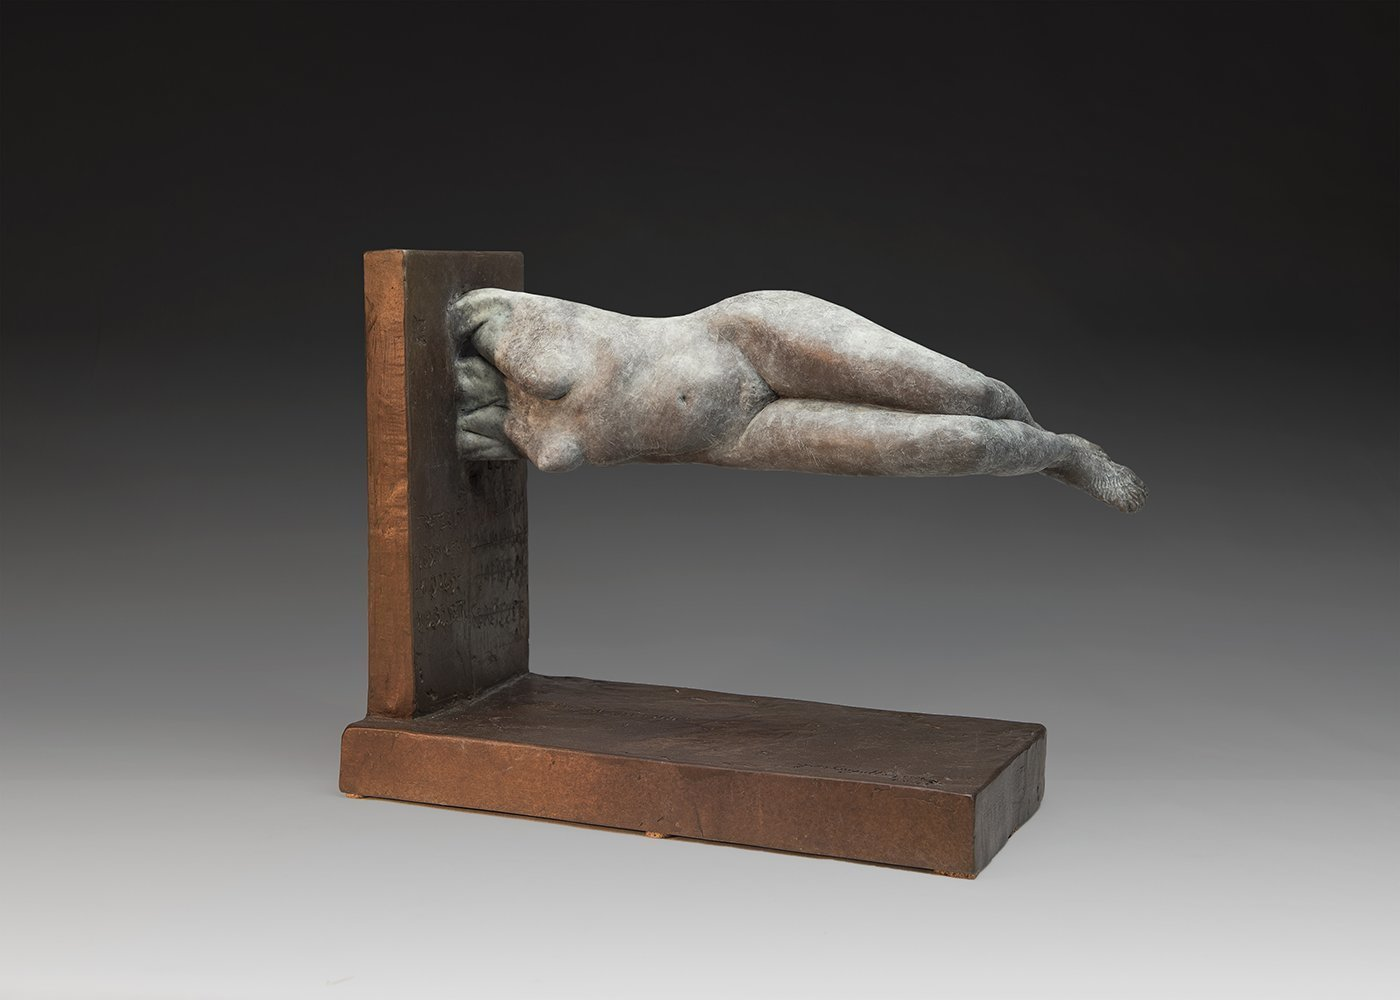 Yves  Goyatton: 'Weighless', 2016 Bronze Sculpture, Figurative. Artist Description: Yves Goyatton bronze contemporary sculpture was created in 2016 Weightless is a tribute to life. This body is floating but remains strong defying gravitational pull. Like an imaginary line who can represent the good bad of human spirit. ...